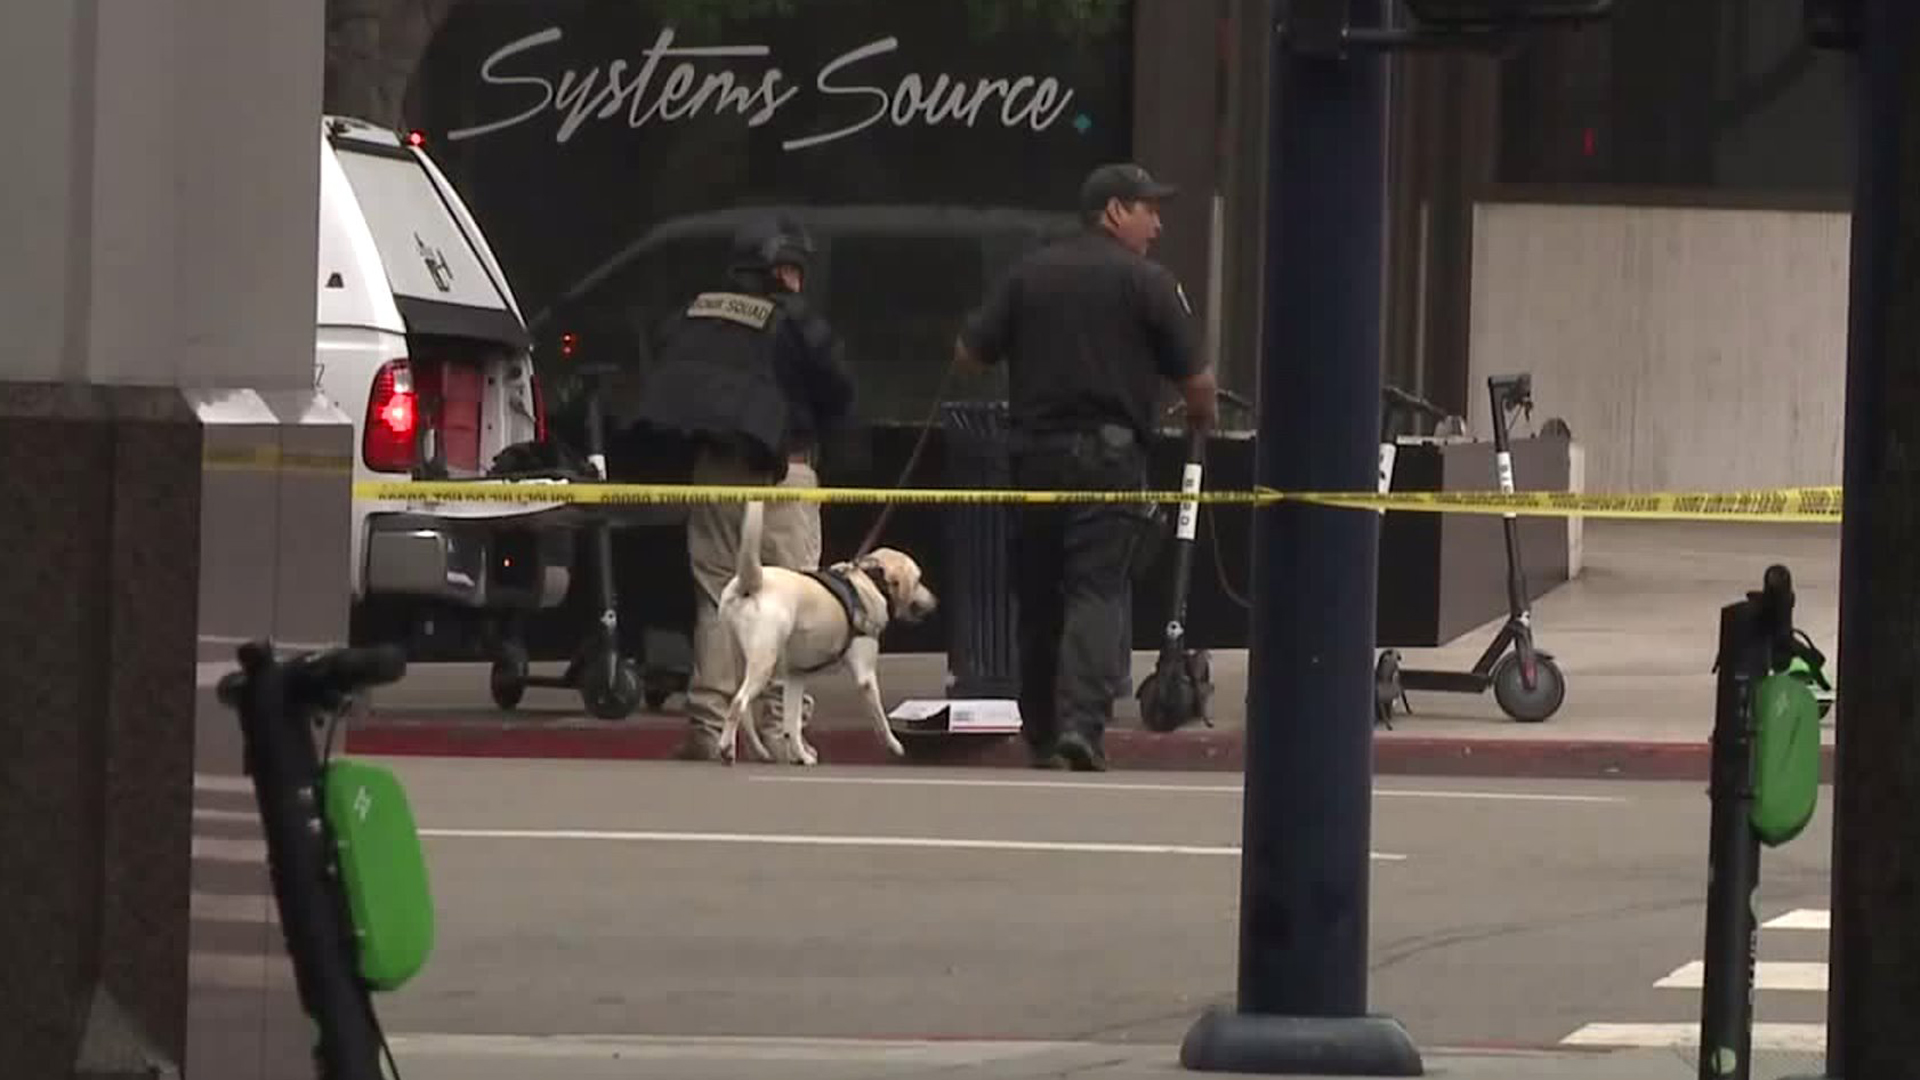 Authorities investigated suspicious packages found outside a building that houses the San Diego Union-Tribune and an office of Sen. Kamala Harris. (Credit: KSWB)